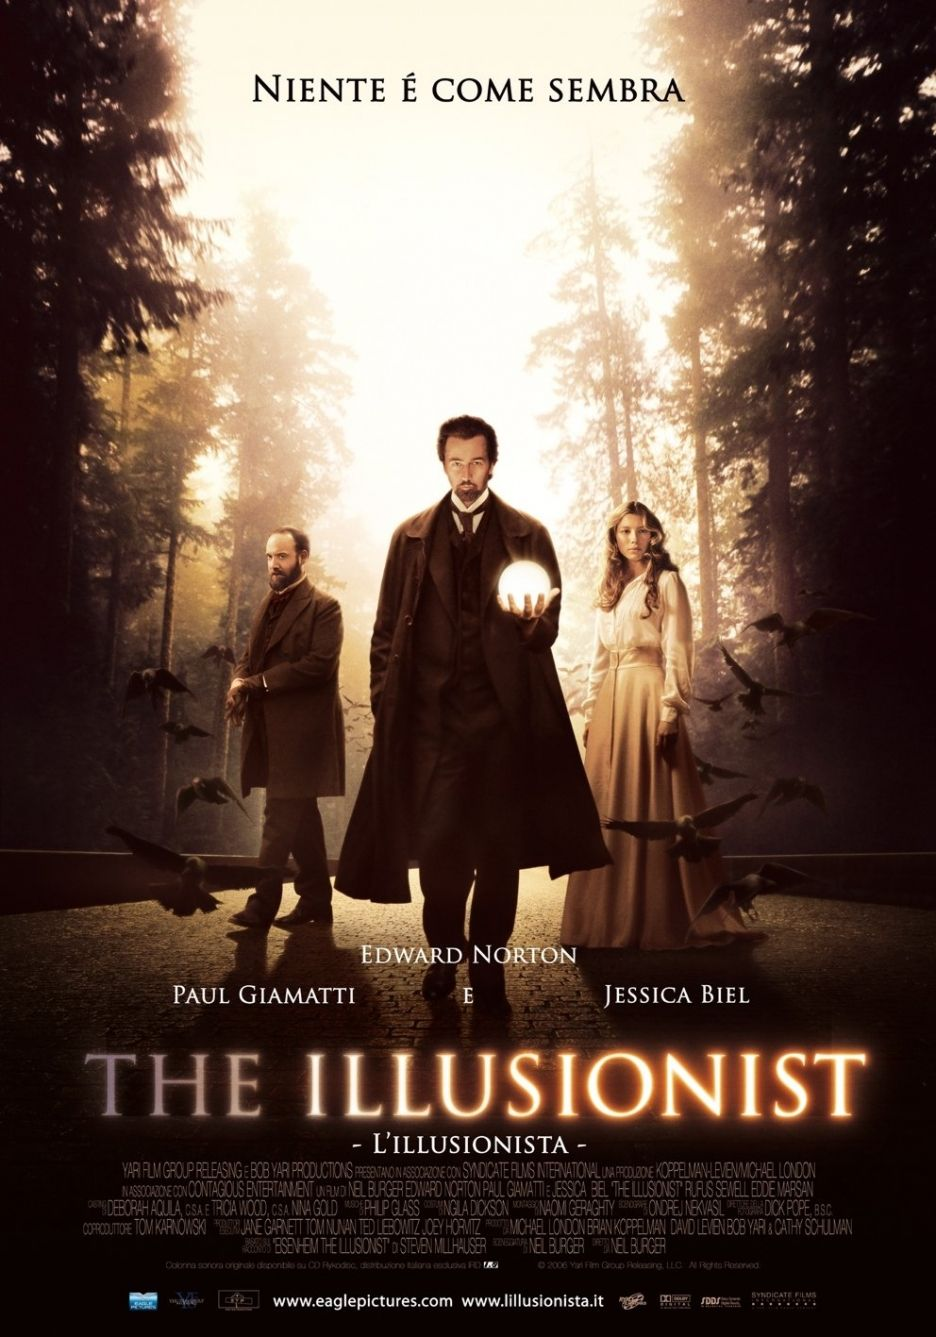 O Ilusionista (The Illusionist), 2006. The illusionist